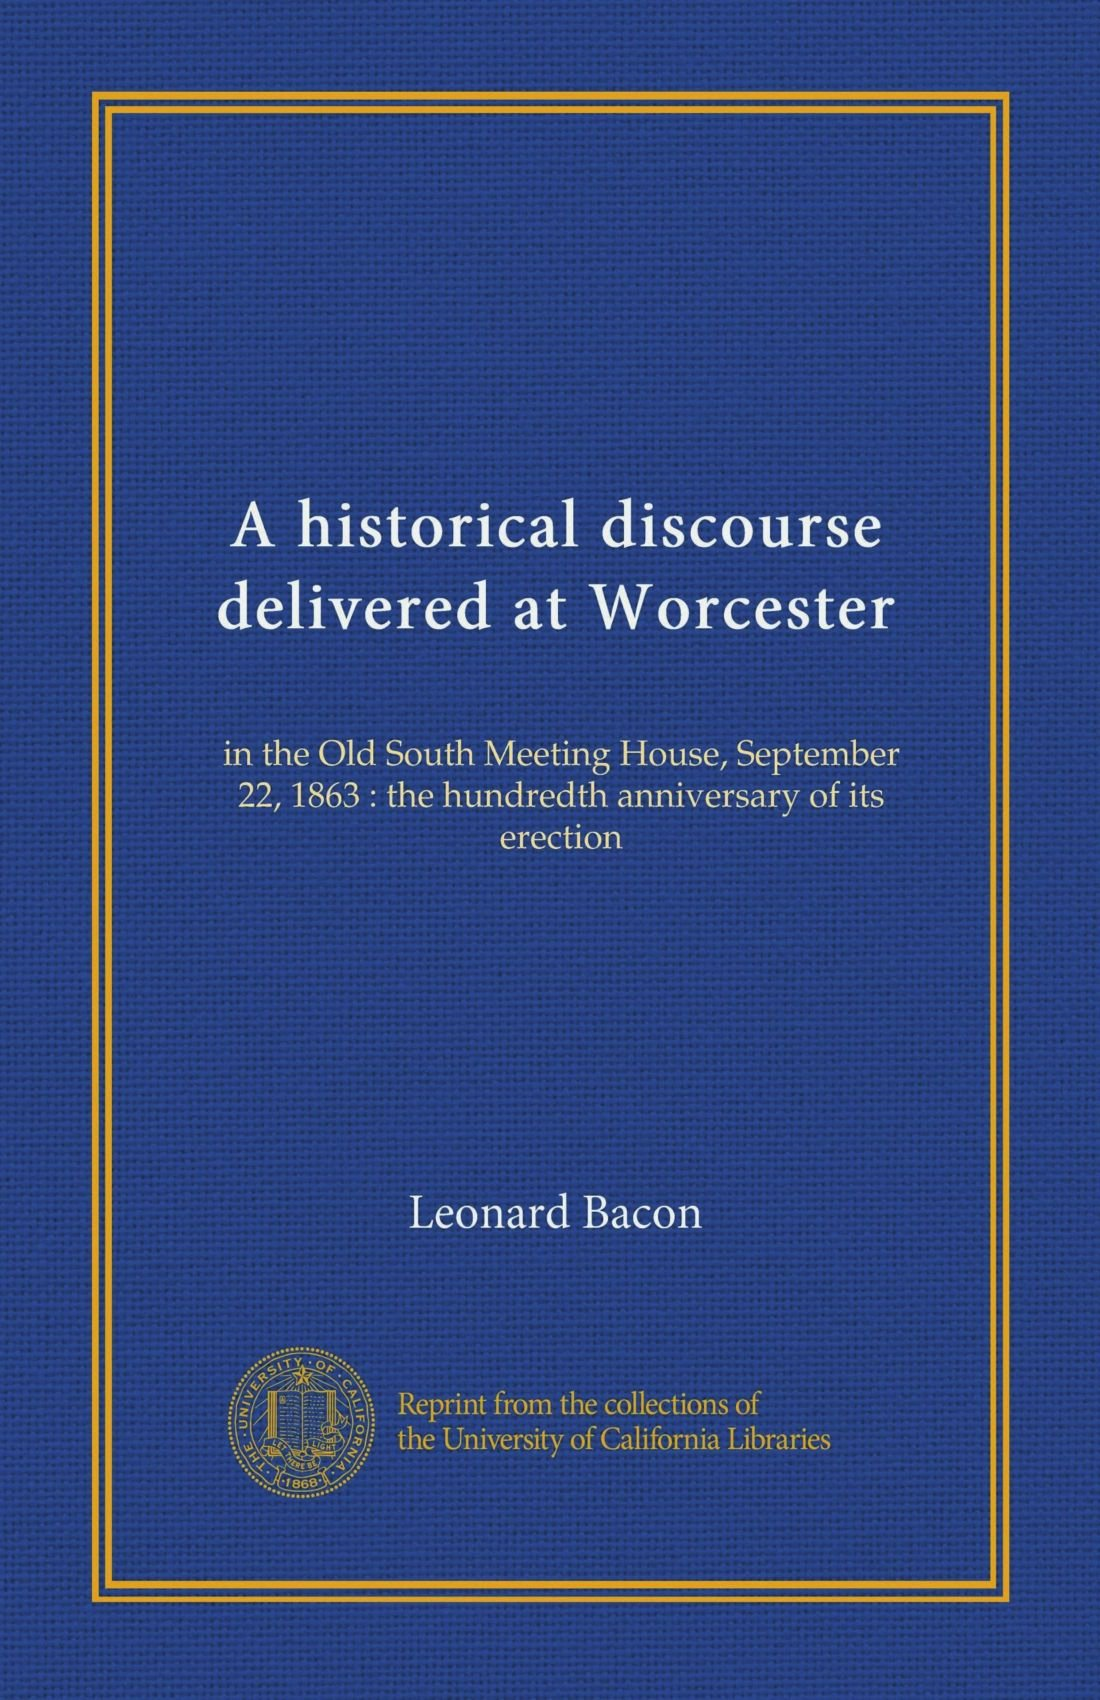 Read Online A historical discourse delivered at Worcester: in the Old South Meeting House, September 22, 1863 : the hundredth anniversary of its erection pdf